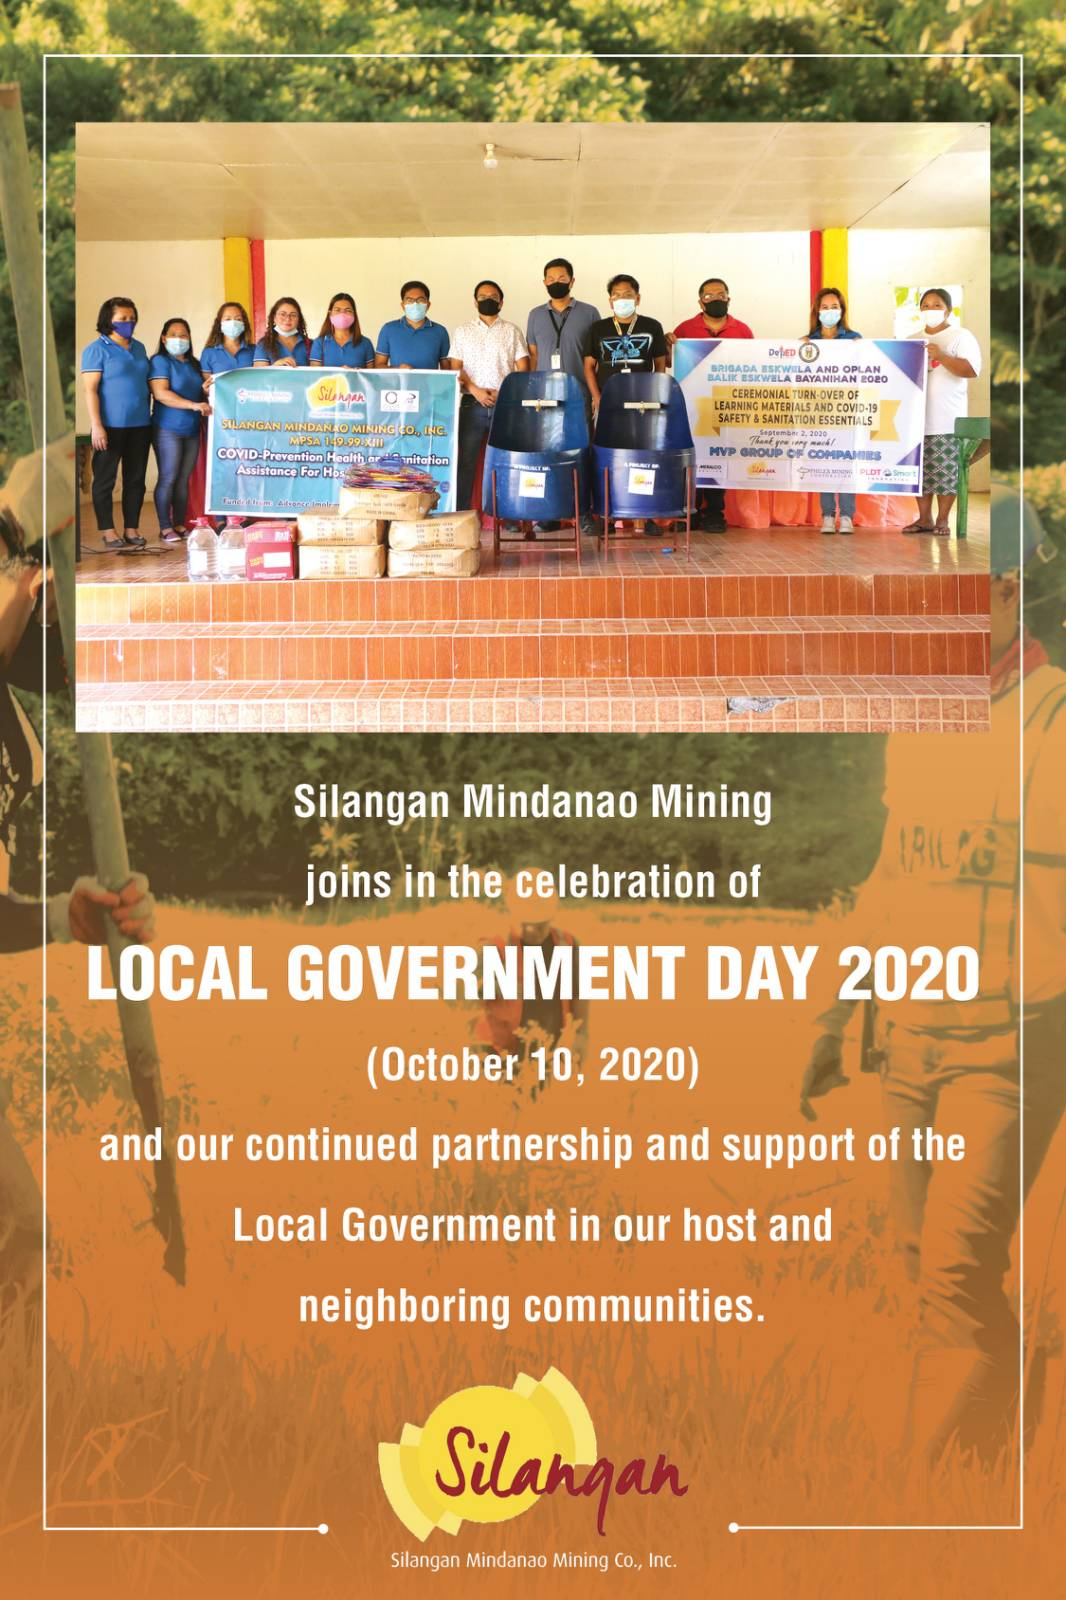 Silangan: Local Government Day